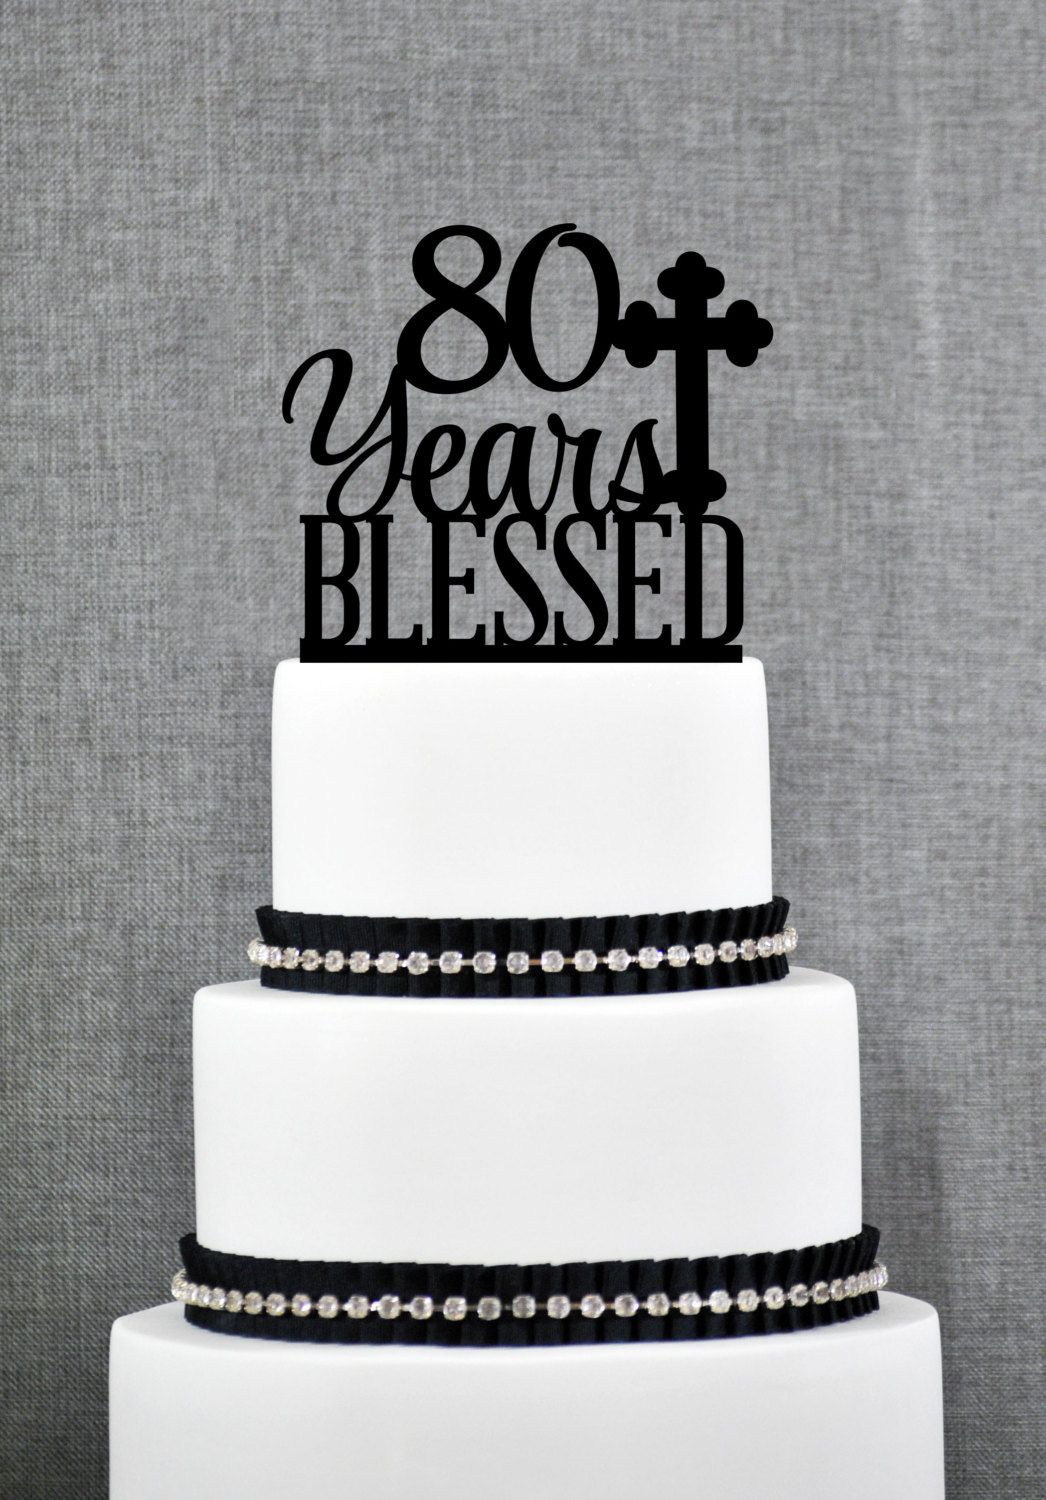 New to ChicagoFactory on Etsy: 80 Years Blessed Cake Topper Classy 80th Birthday Cake Topper 80th Anniversary Cake Topper- (S247) (15.00 USD)